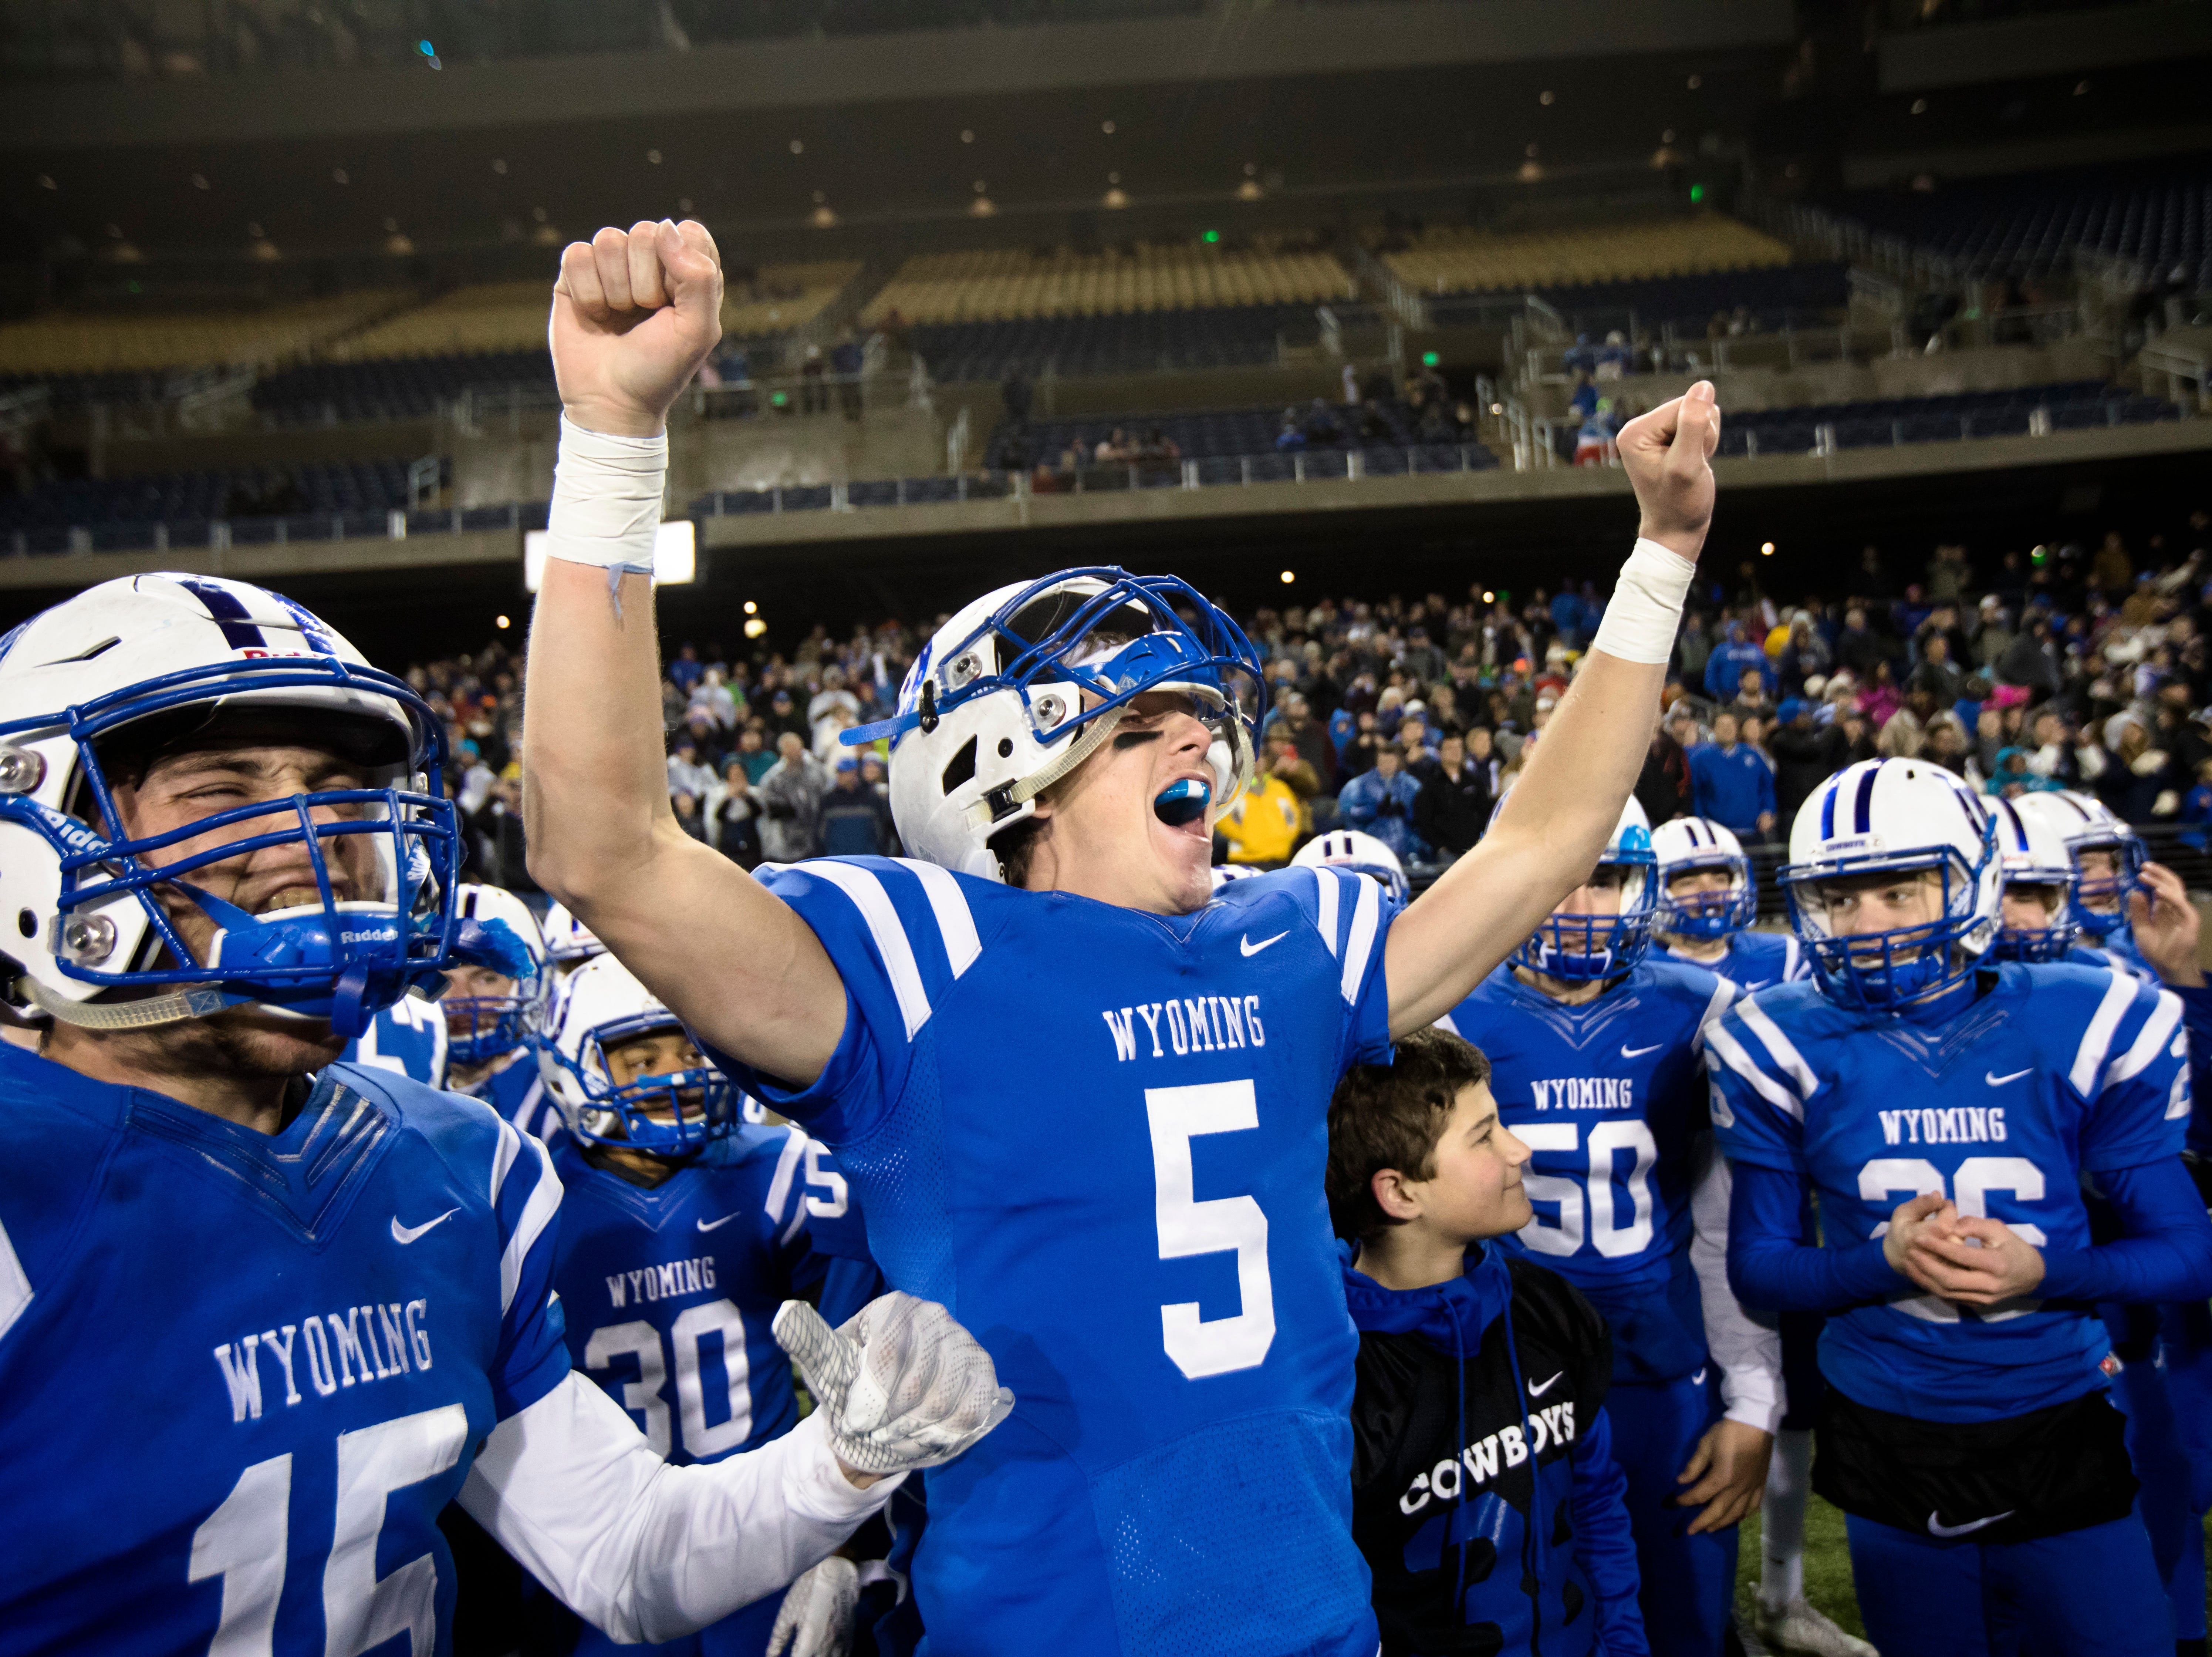 Wyoming's Perry McMichen (15) and Wyoming's Sam Pendery (5) celebrate as they win the OHSAA Division IV State Championship football game between Wyoming and Girard on Saturday, Dec. 1, 2018, at Tom Benson Stadium in Canton. Wyoming defeated Girard 42-14.